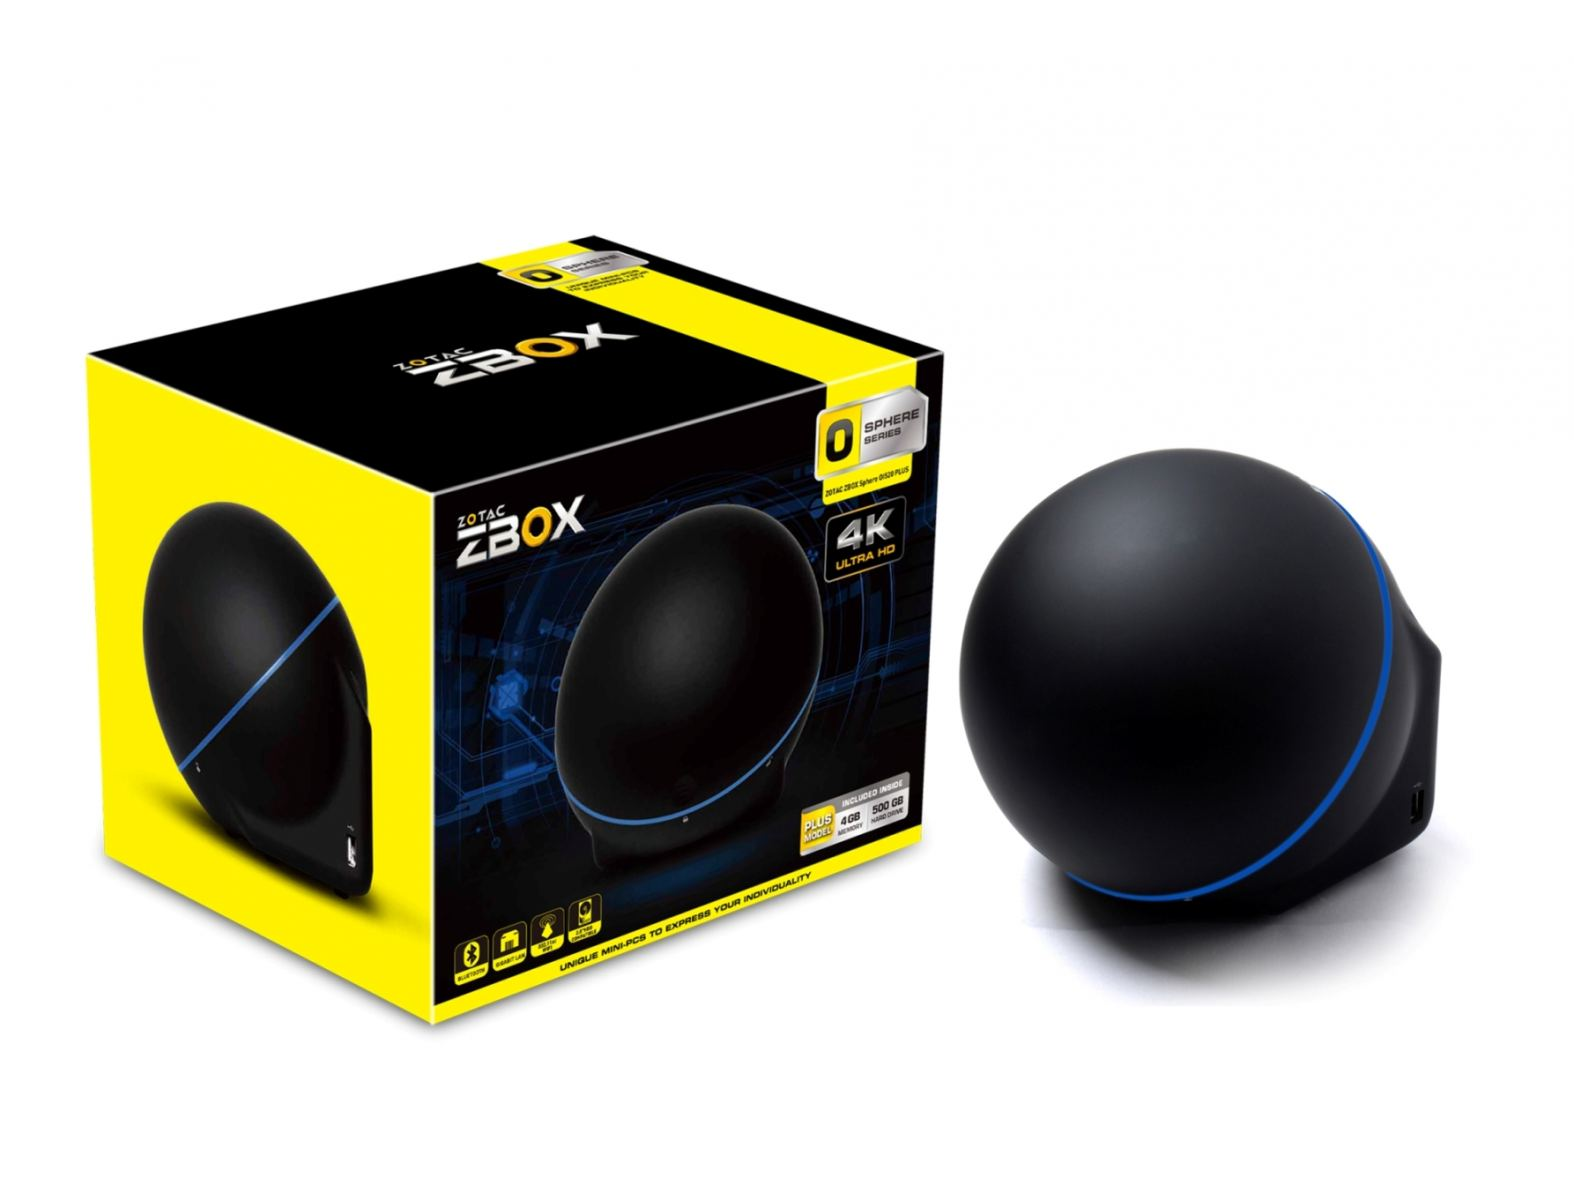 ZBOX Sphere OI520 PLUS